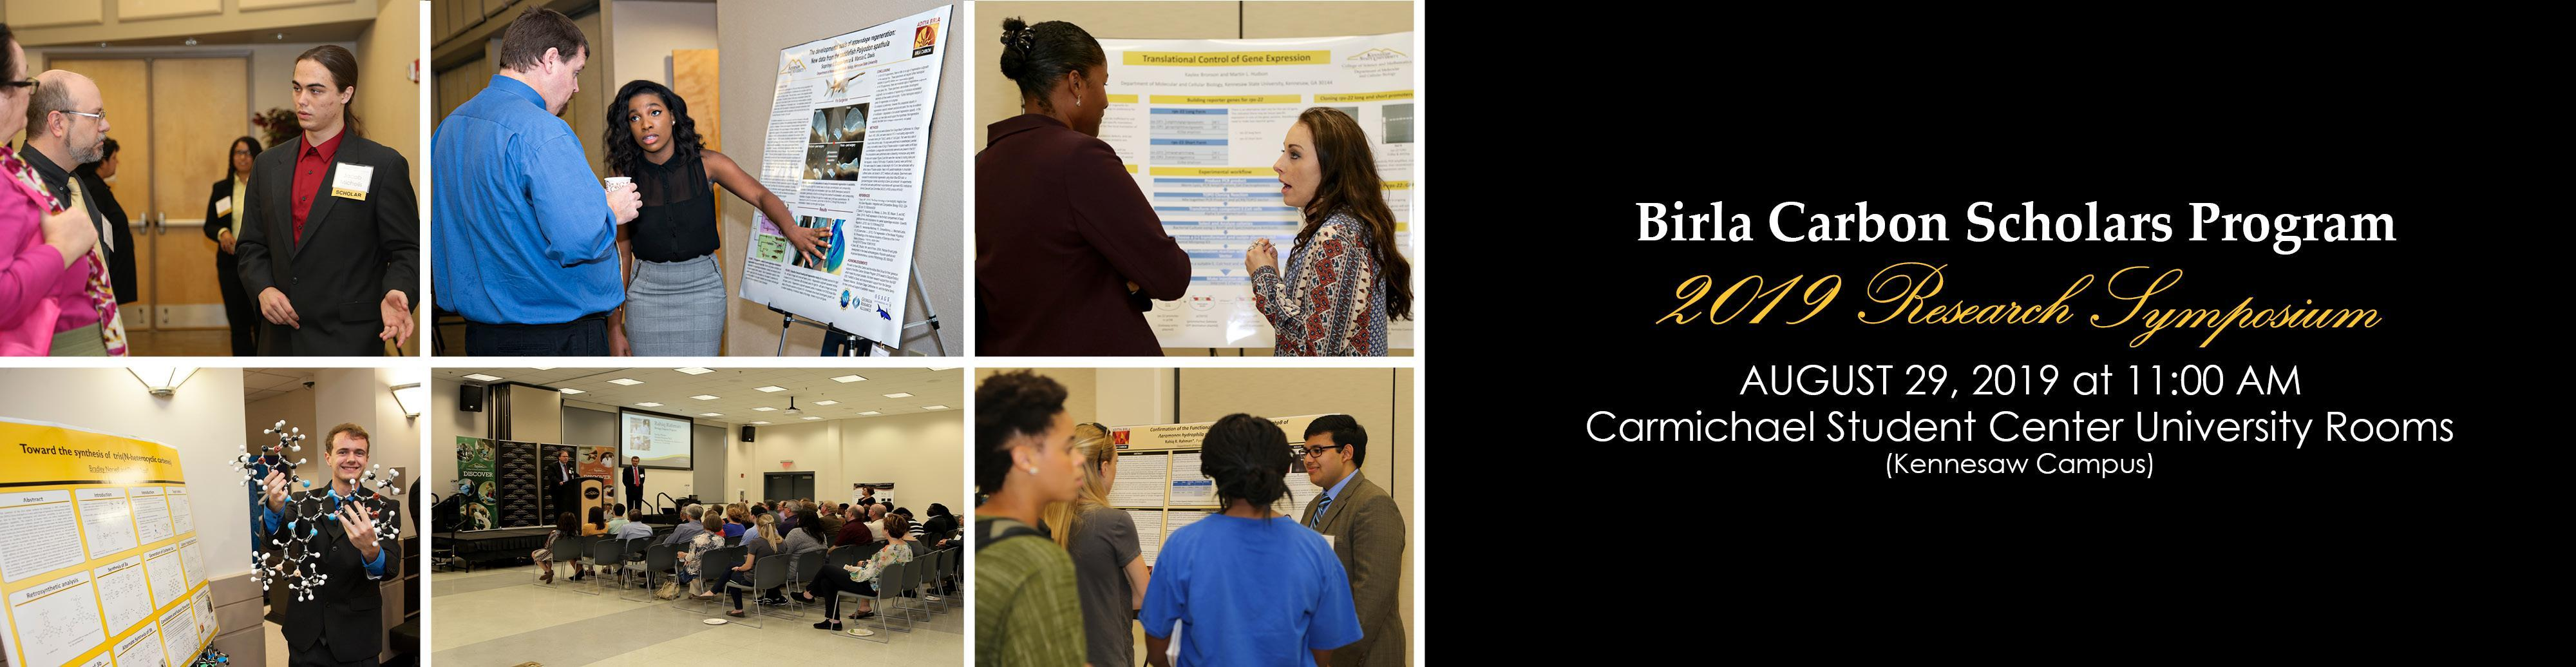 2019 Birla Carbon Scholars Program Research Symposium